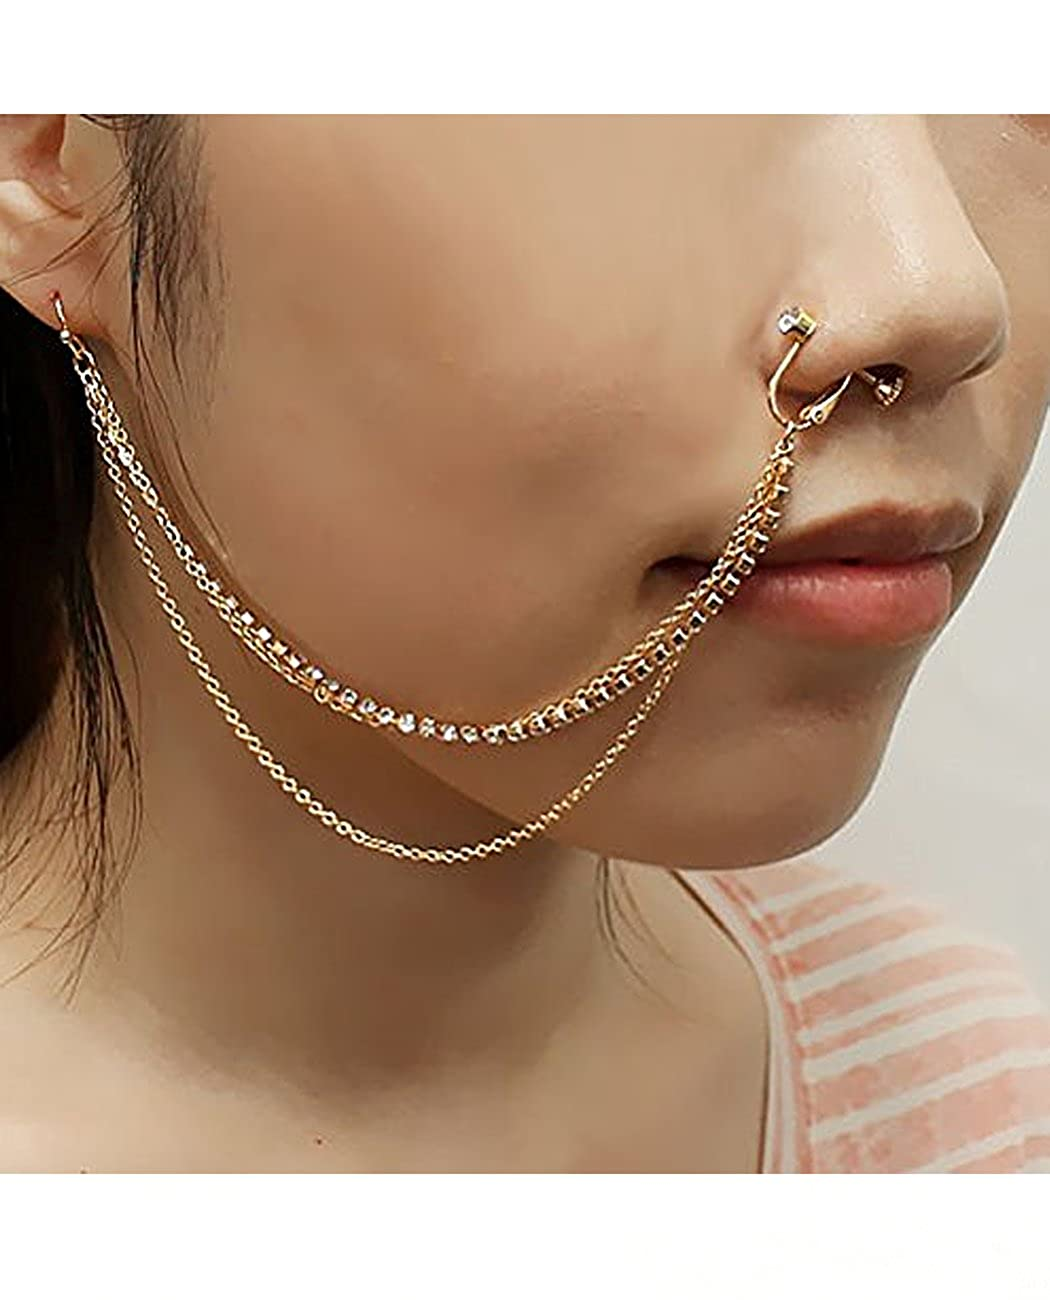 Pierced Hook Earring To Clip On Nose Hoop Ring w/ Triple Strand Stone Stud Chain in Gold-Tone NYfashion101 PE1077GDCLR